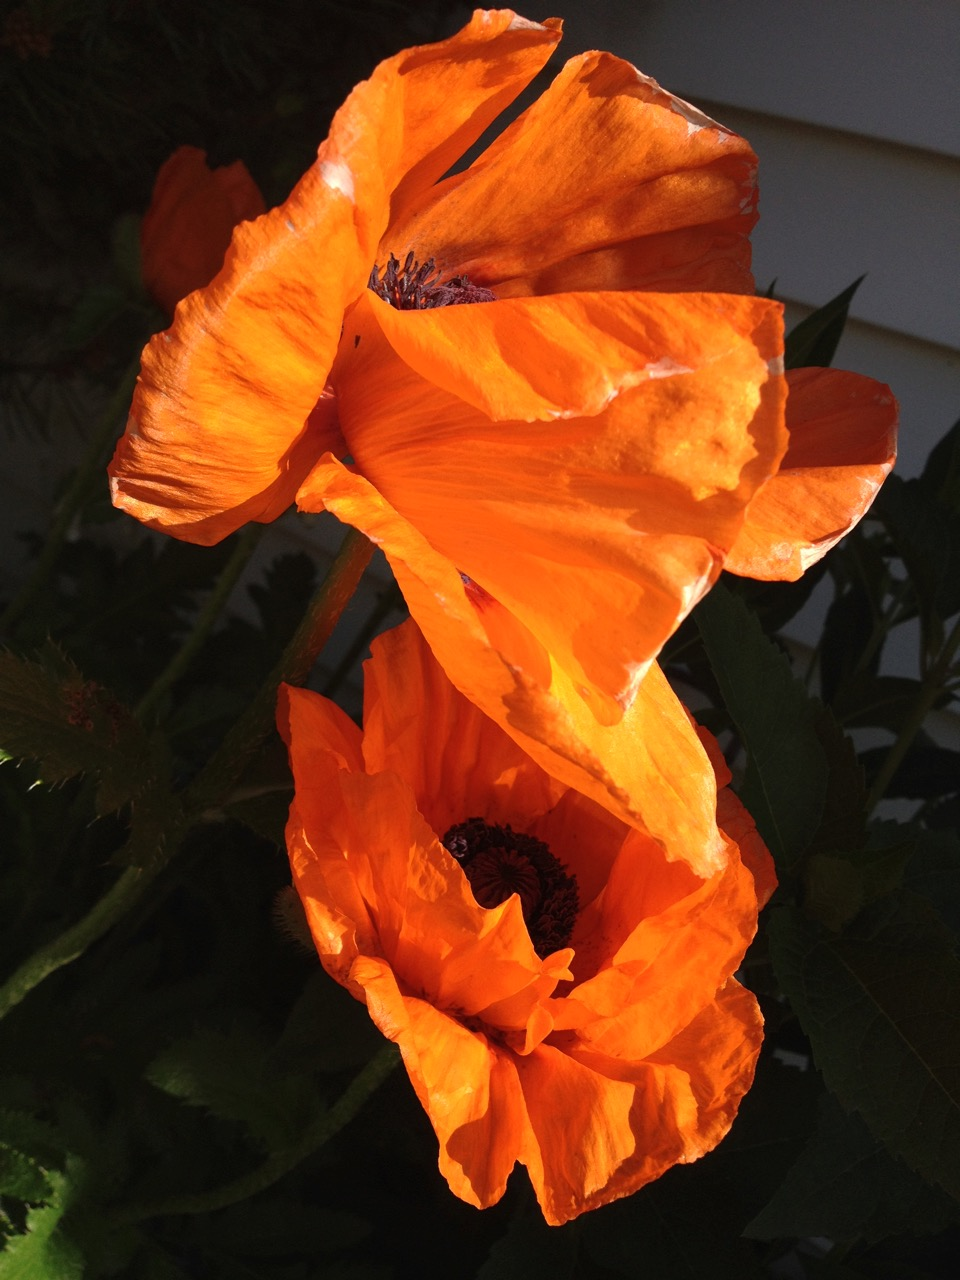 Poppies have the most wonderful colour and shapes, especially in the morning light.